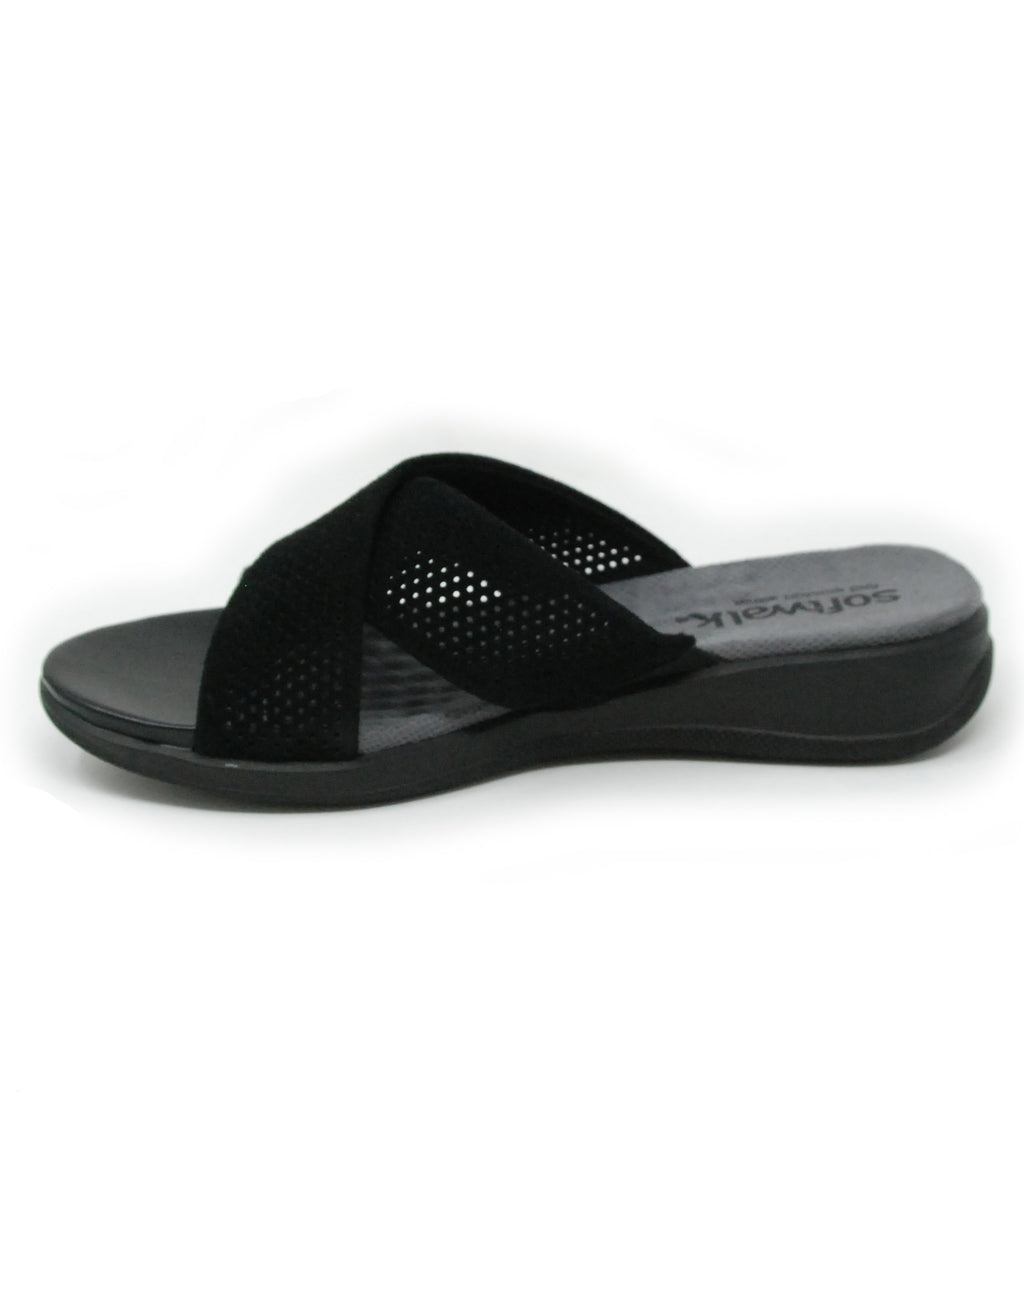 Softwalk Tillman Black Suede Sandal